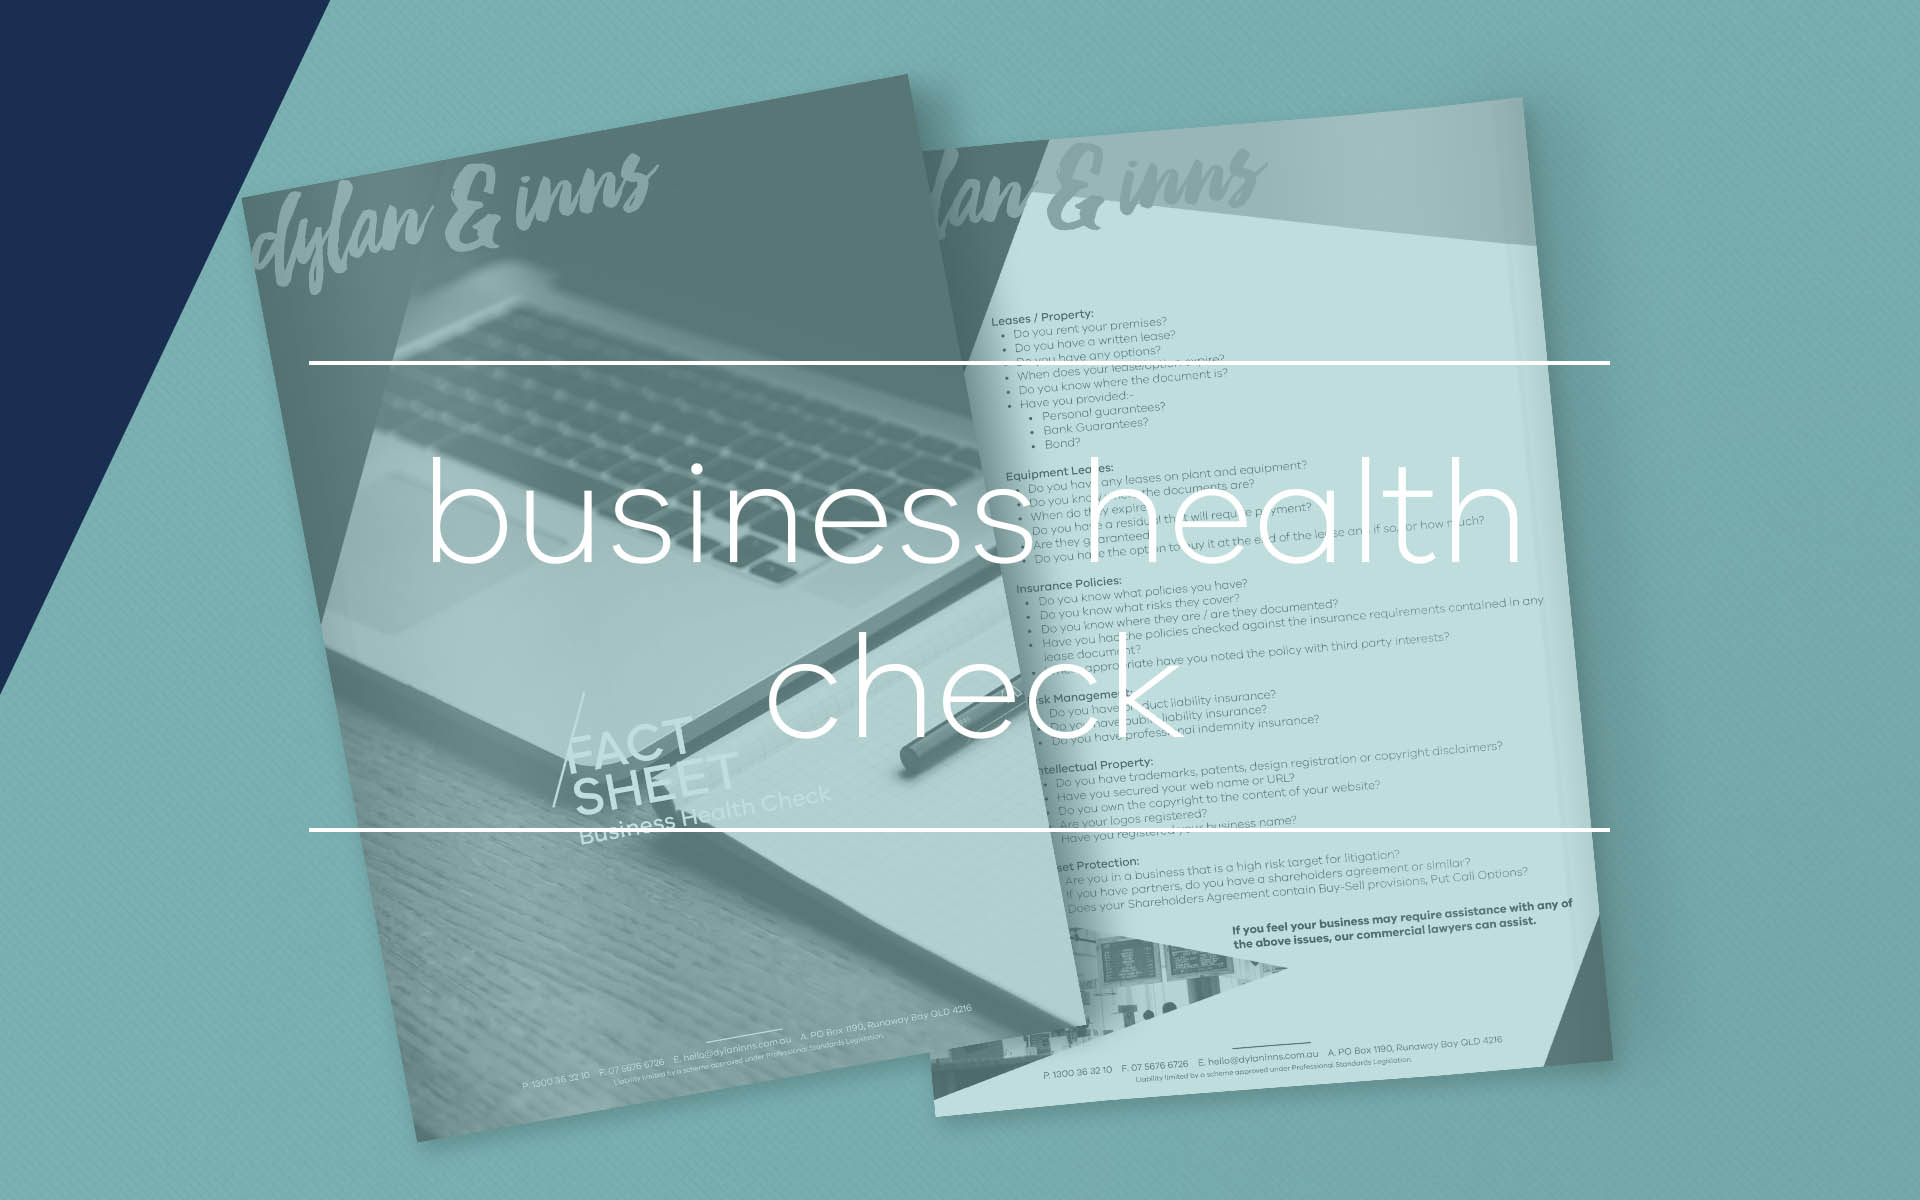 Our business lawyers put together this fact sheet which contains a quick business health check to highlight issues you may need to address as a business owner.